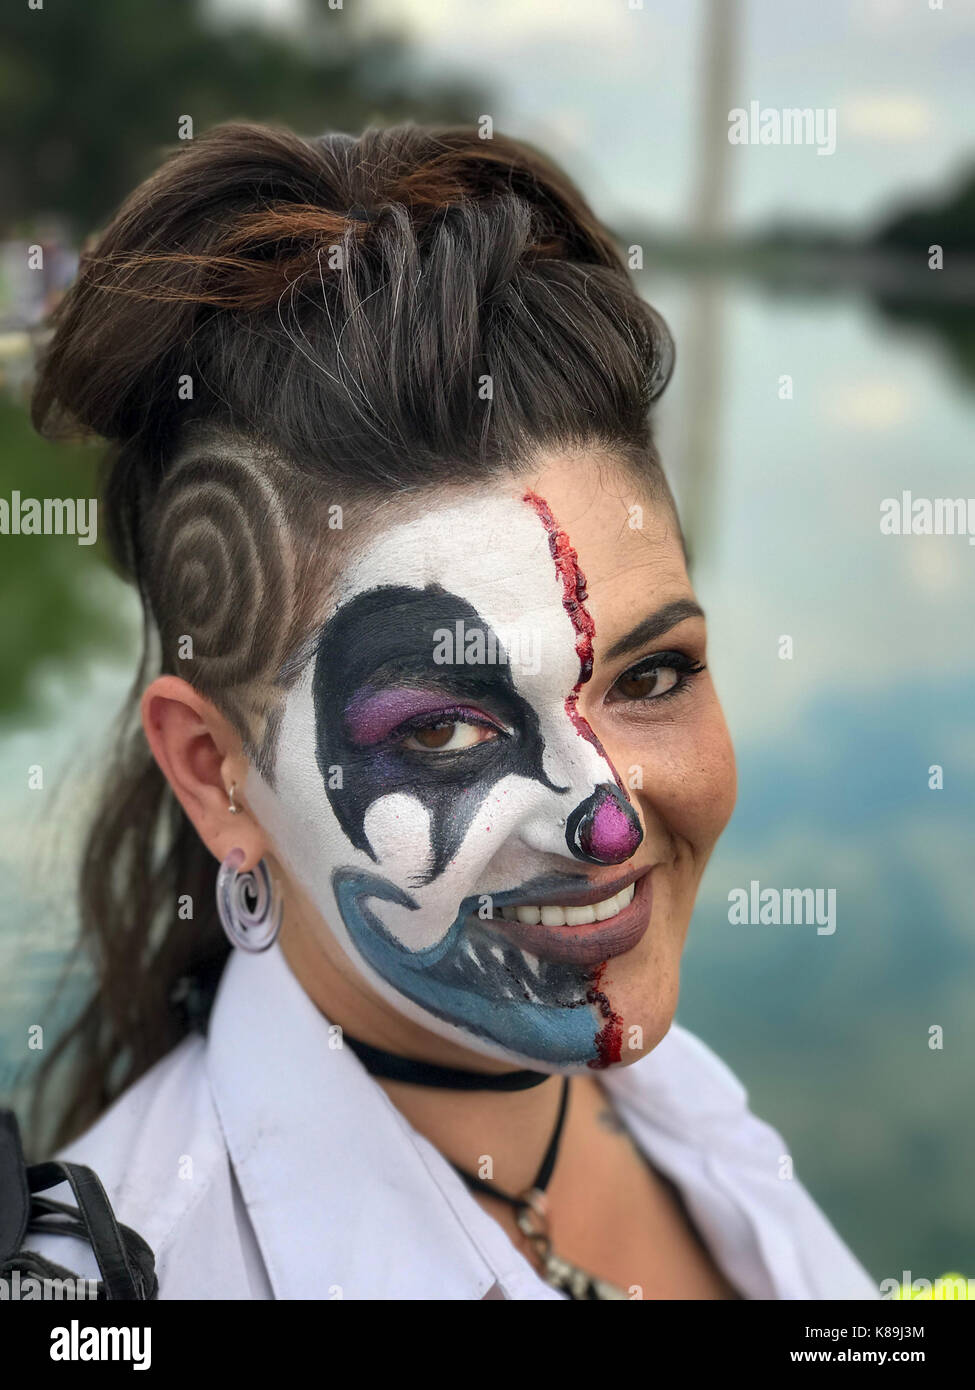 Washington, D.C, USA. 16th Sep, 2017. Jackie poses for a photo as she attends Juggalo march and rally at the Lincoln Stock Photo